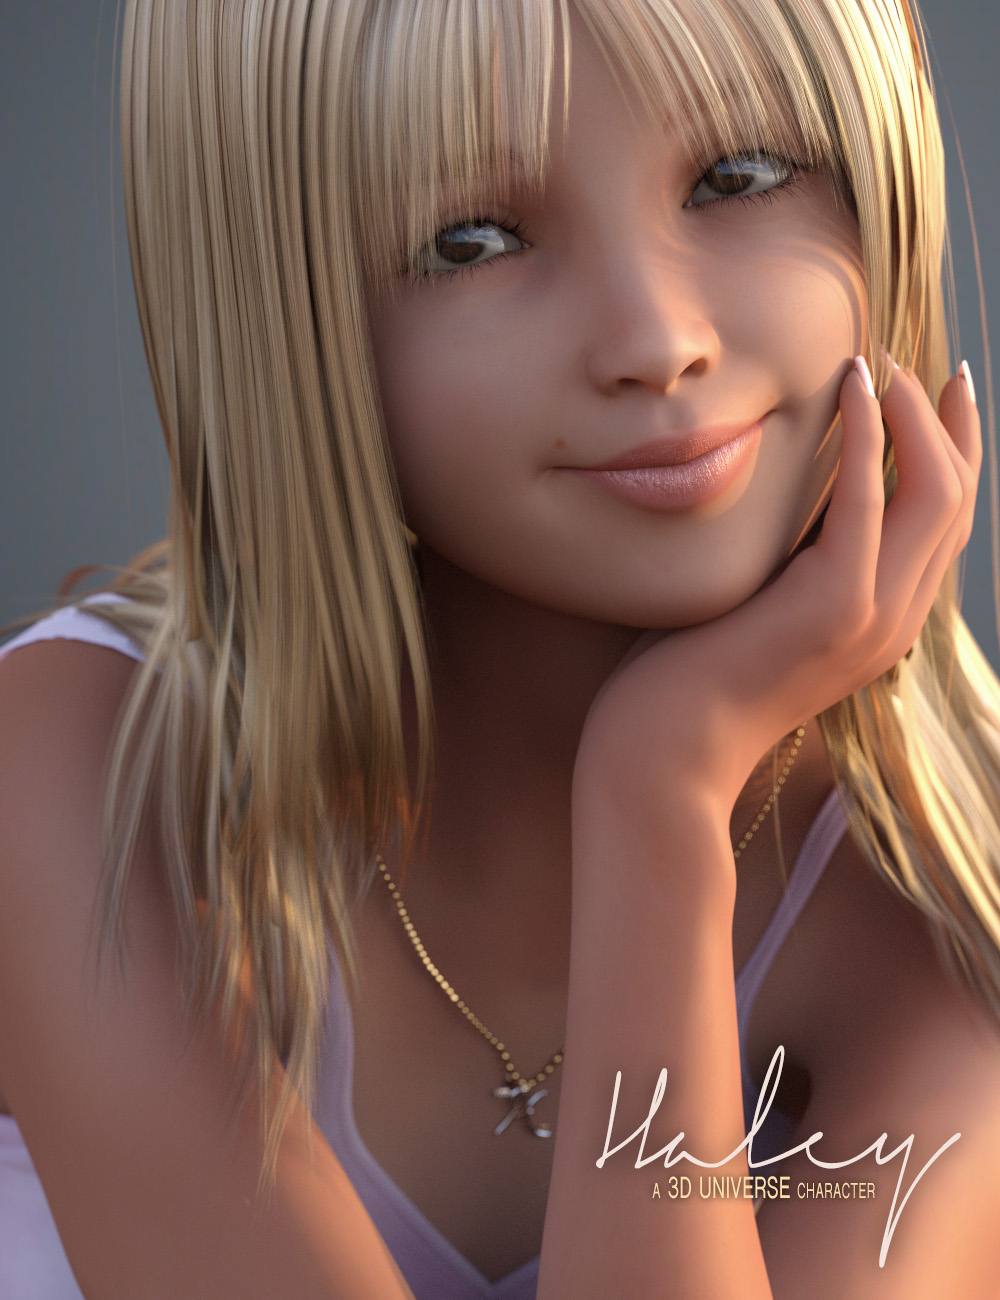 Haley for Genesis 3 Female(s) Character & Hair by: 3D Universe, 3D Models by Daz 3D